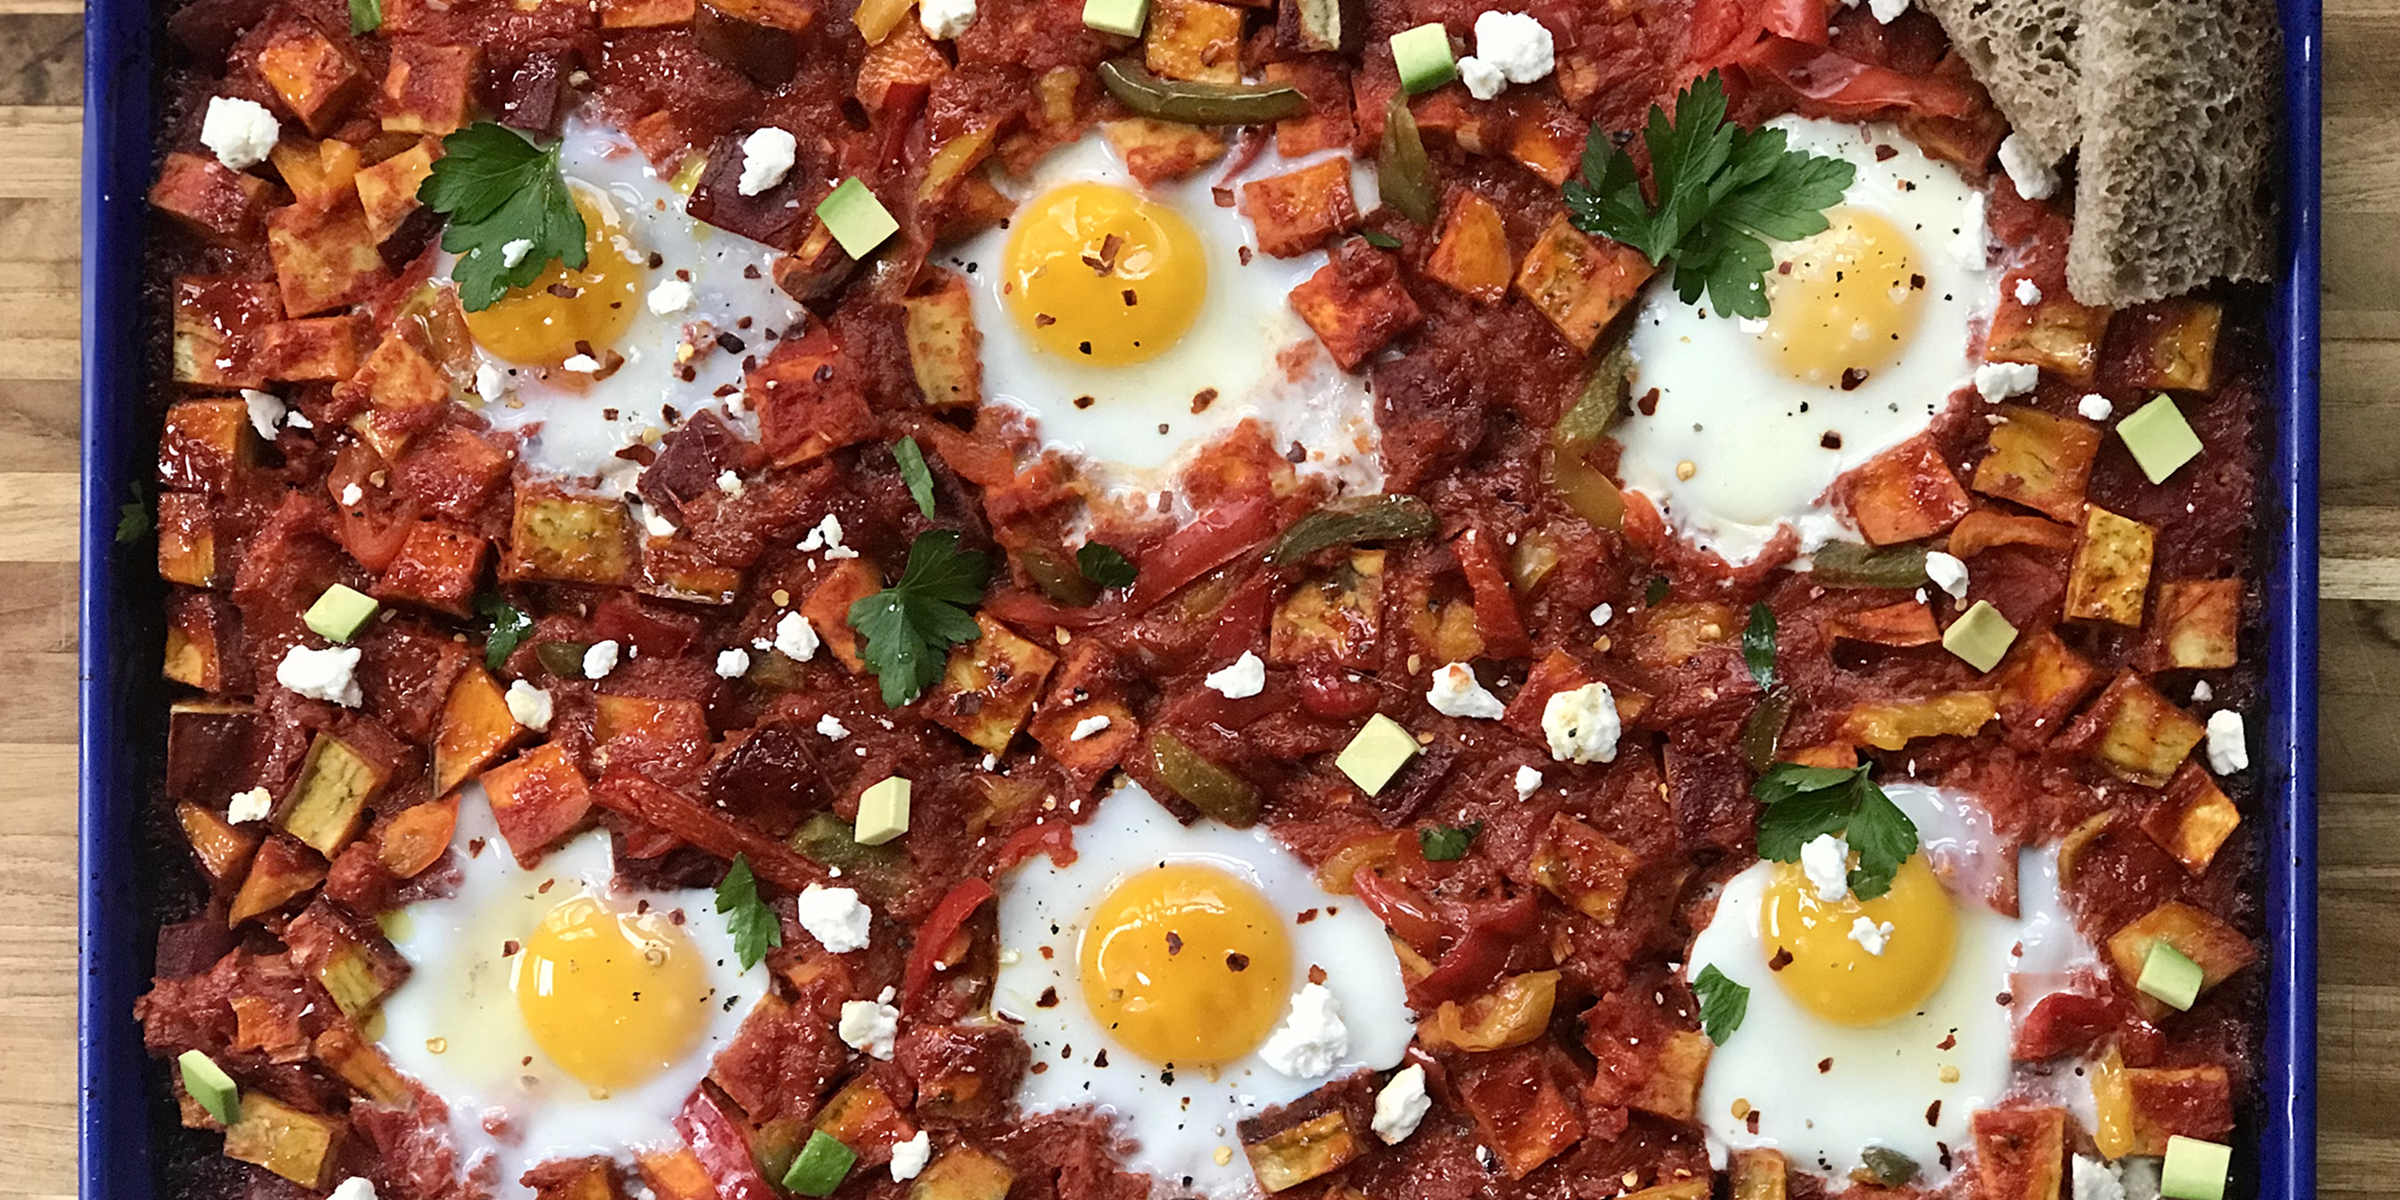 Make spicy sheet pan shakshuka to feed a crowd with minimal fuss